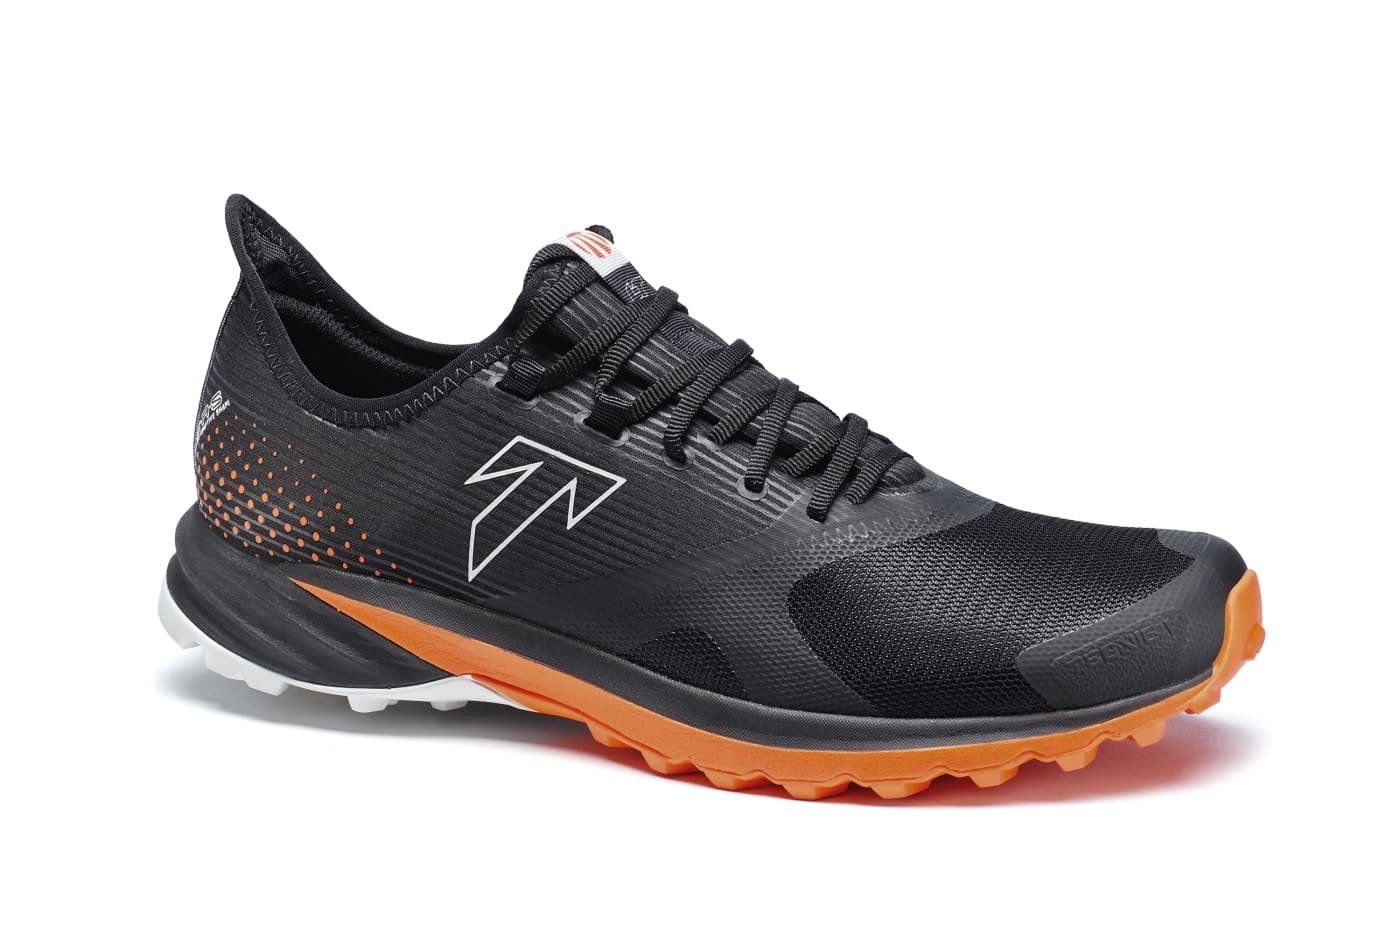 Tecnica Origin XT MS Trail Running Shoe